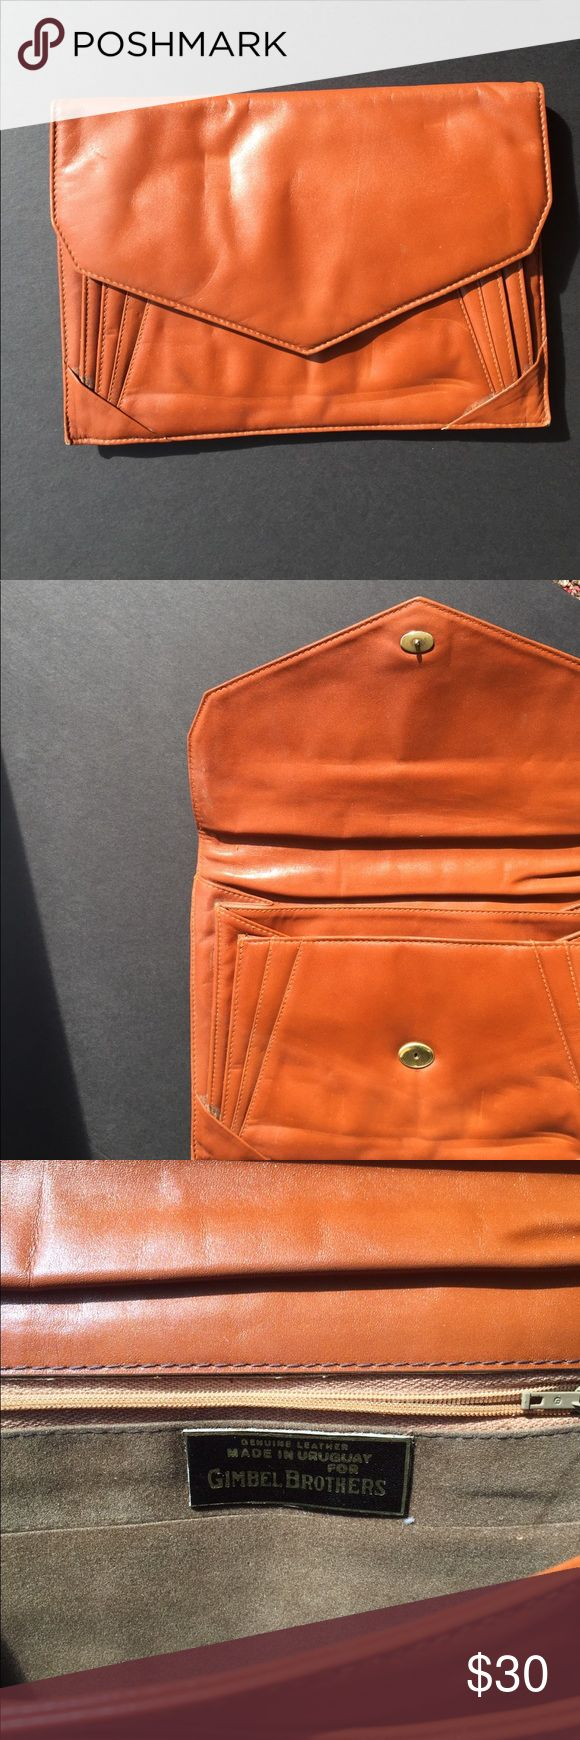 """VINTAGE Brown Leather Clutch Excellent used condition. Rage reads """"made in Uruguay for Gimbel Brothers"""". One small area where stitching is loose (pictured). Very cute! Vintage Bags Clutches & Wristlets"""